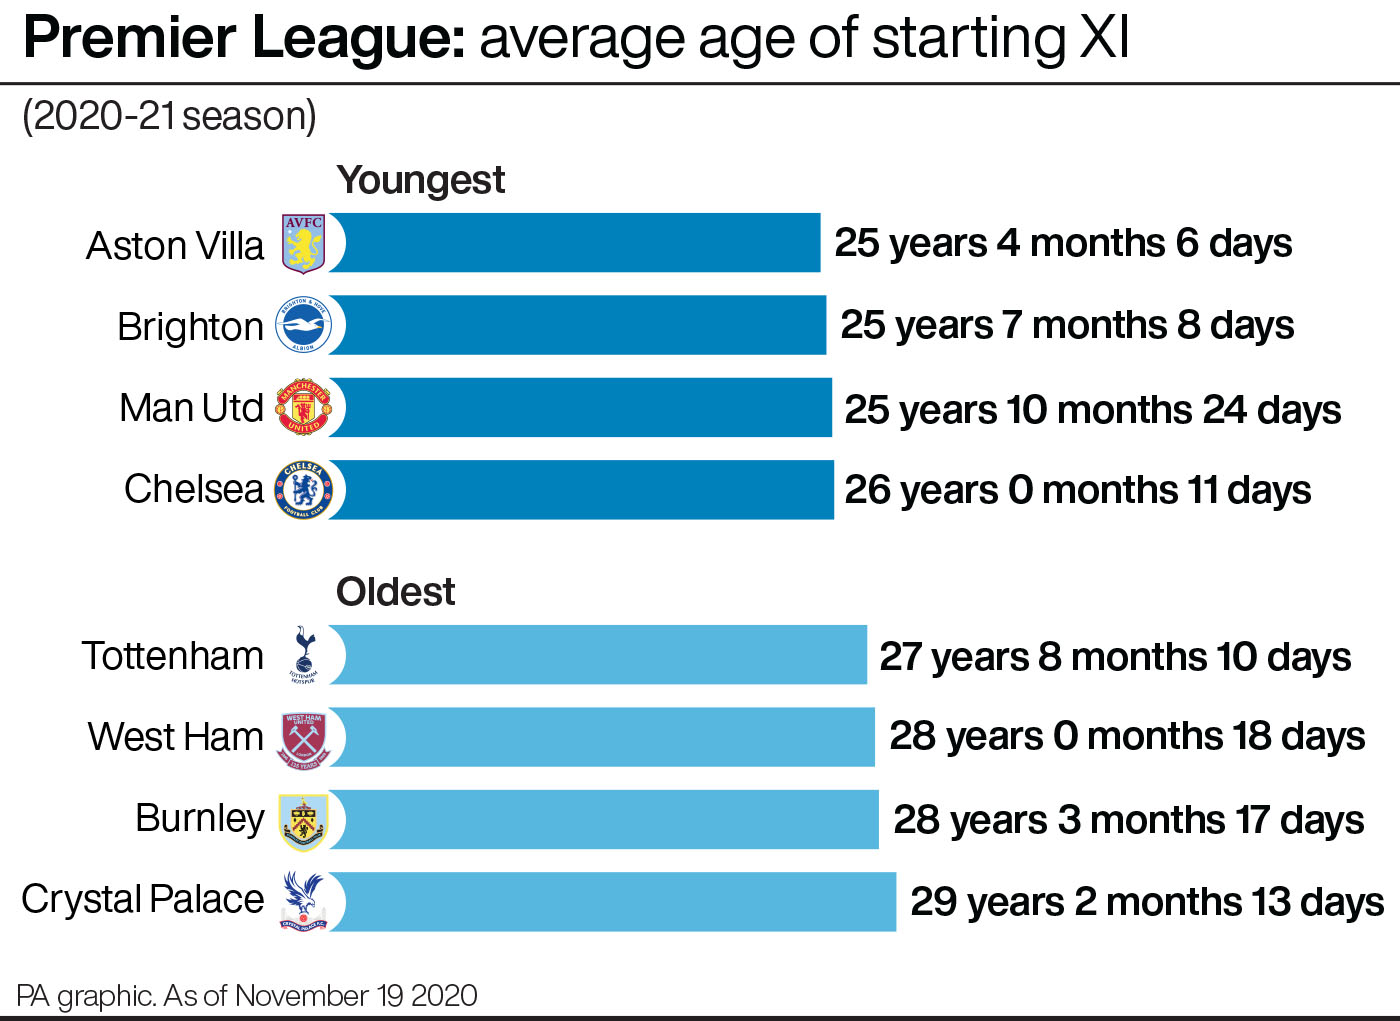 Premier League 2020-21: average age of starting XI